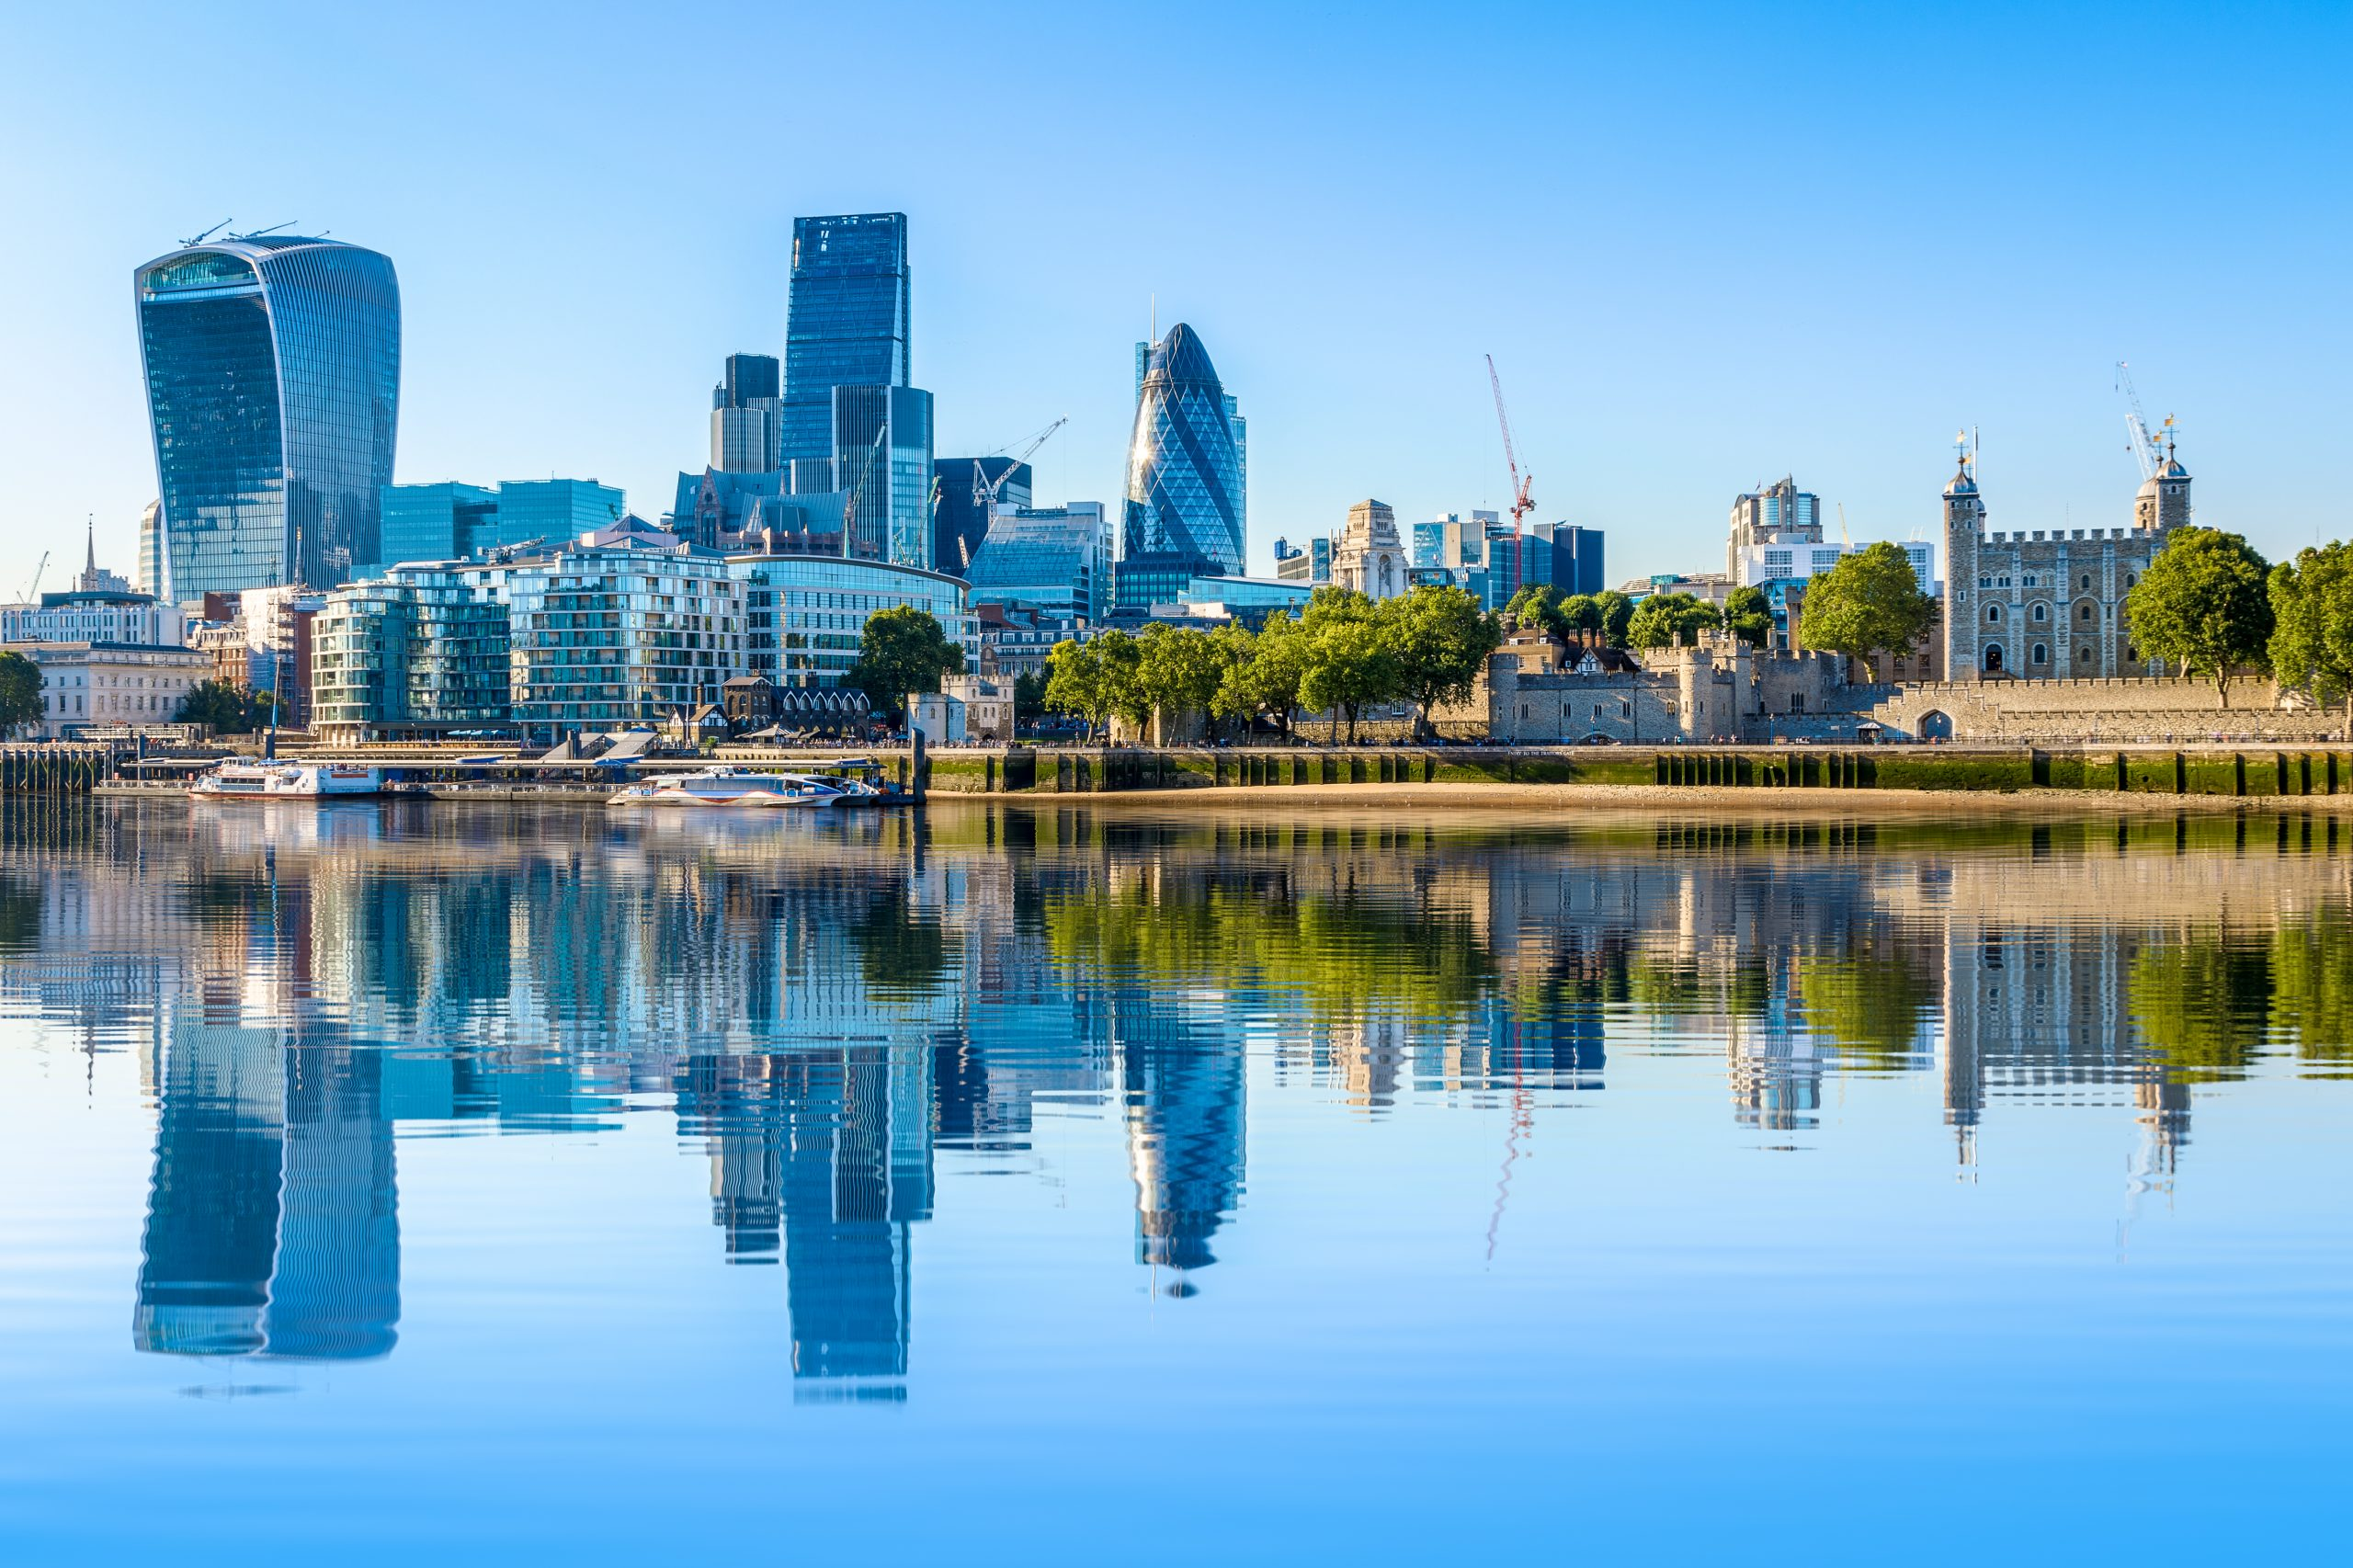 Photograph of a cloudless day at the financial district of London, including The Gherkin, Fenchurch building and Leadenhall building